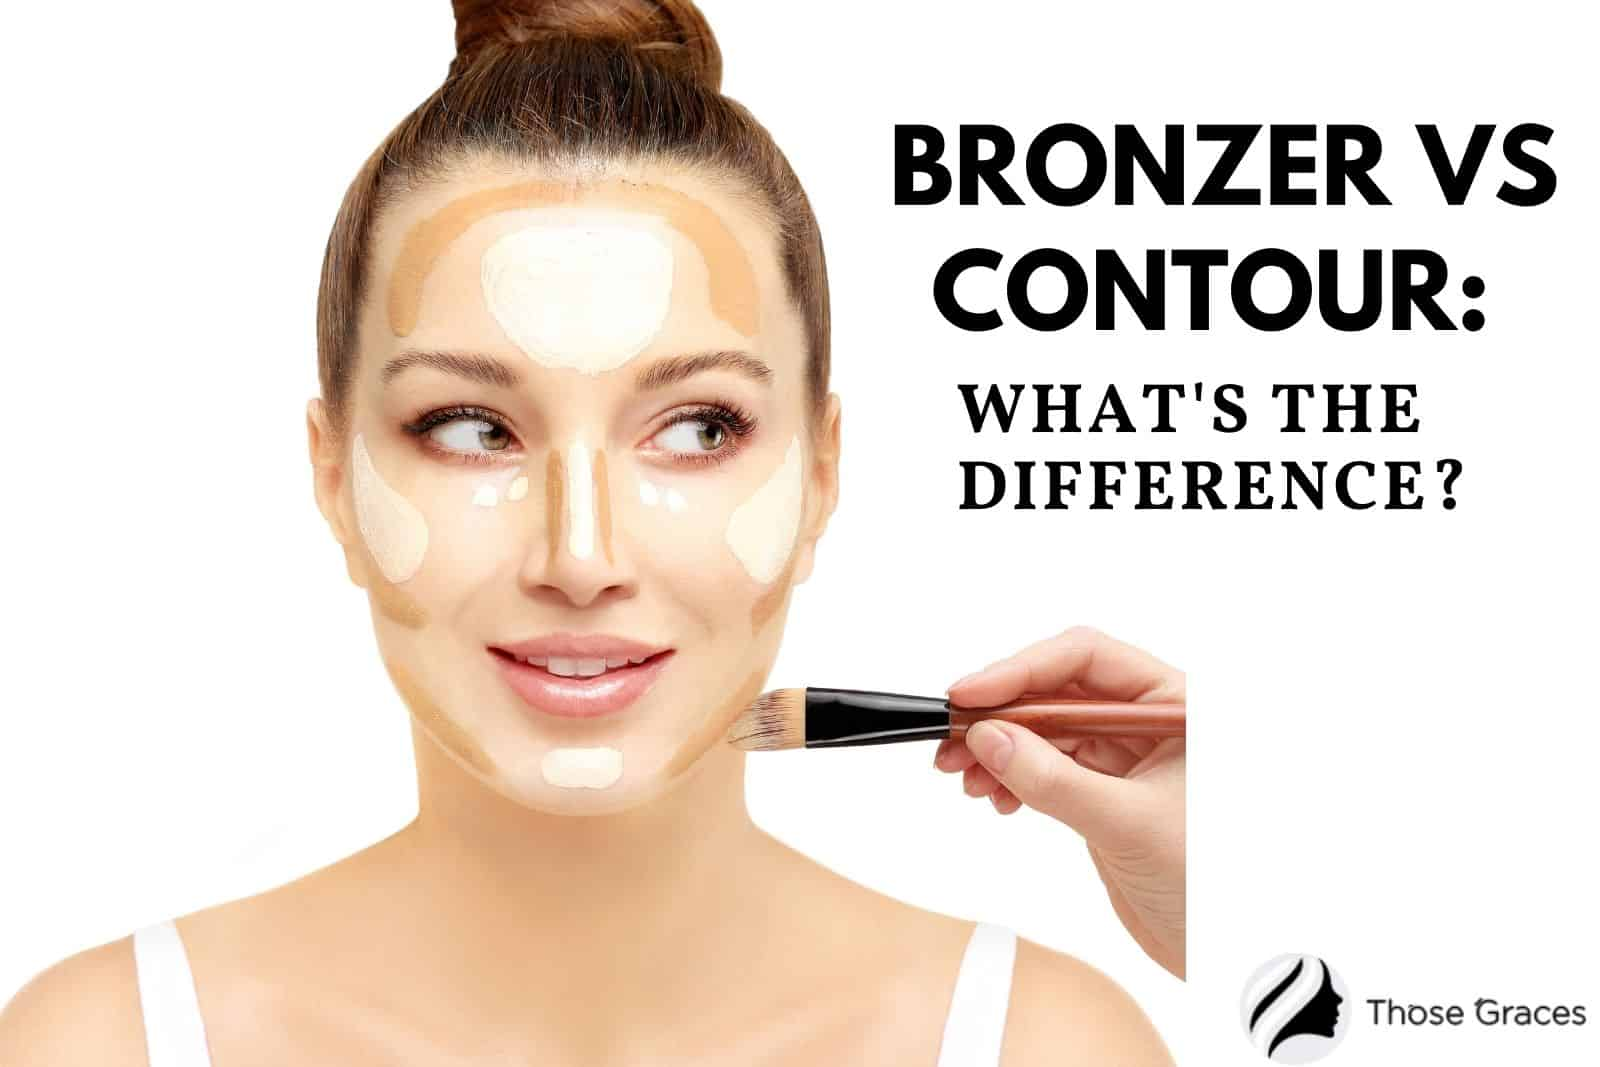 bronzer vs contour: what's the main difference? a beautiful lady contouring her face with make-up